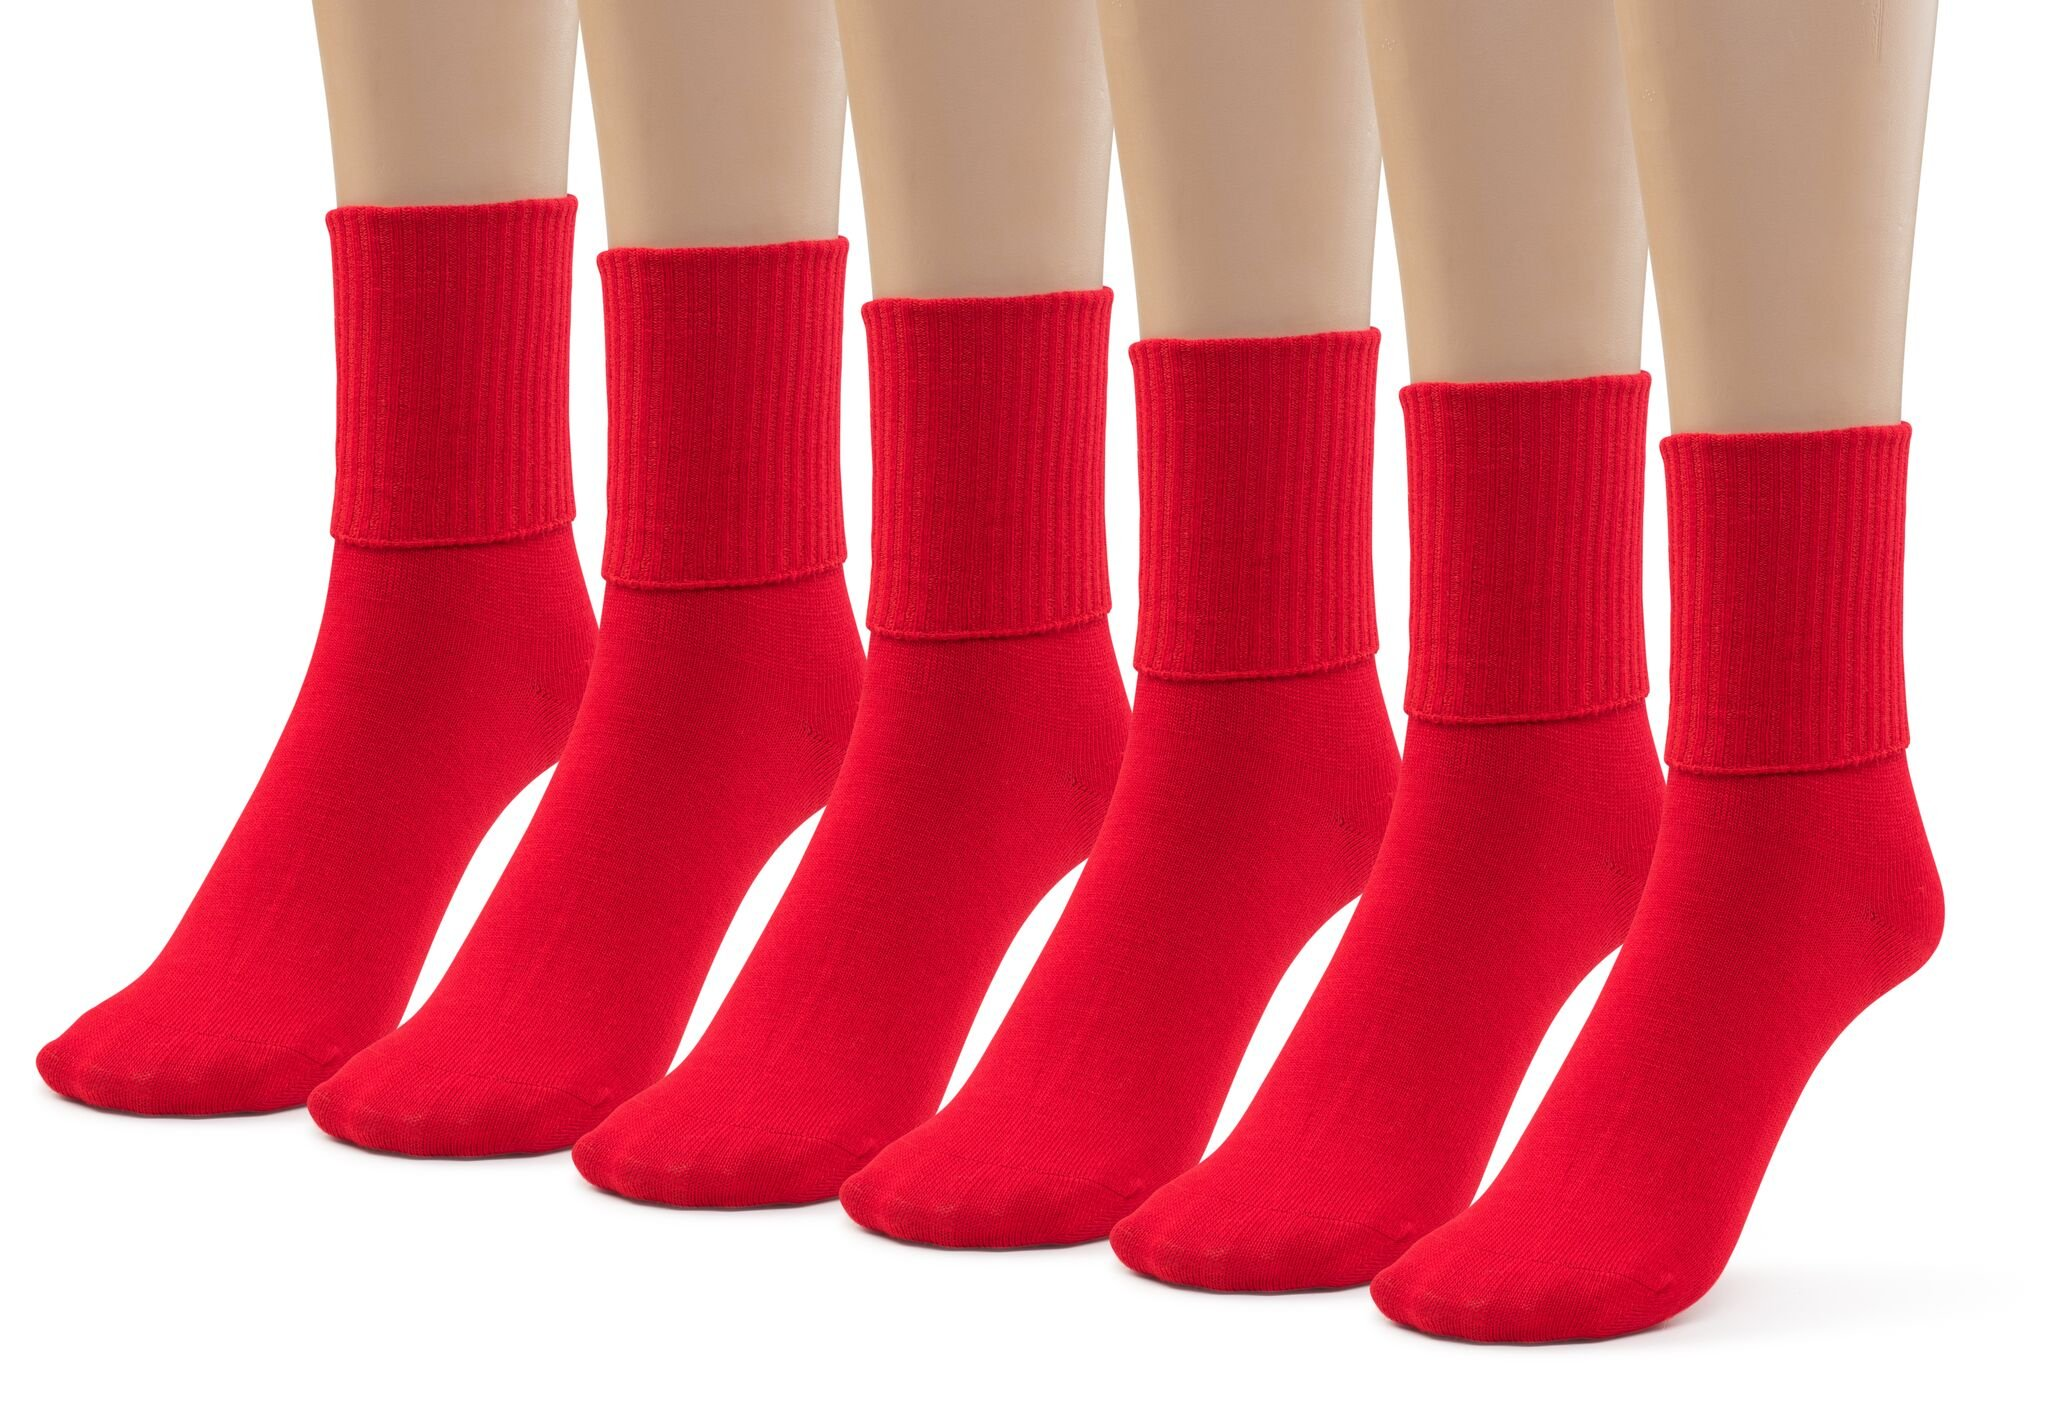 PUREMART Girls Boys School Uniform Classics Rib Athletic Kids Crew Socks 6 Pair Pack